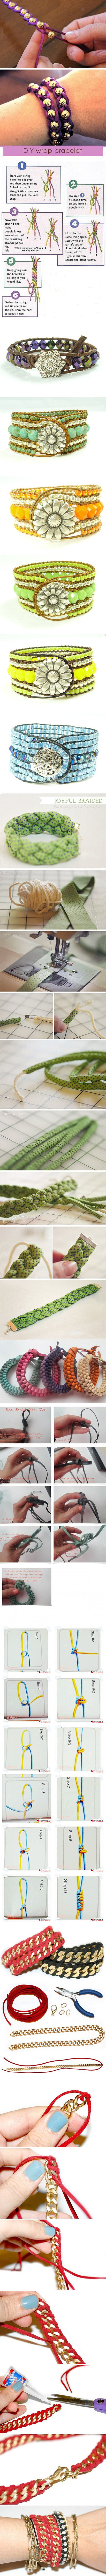 Can use crochet foundation chains as strips, or knitted cables....modify into headbands, etc.